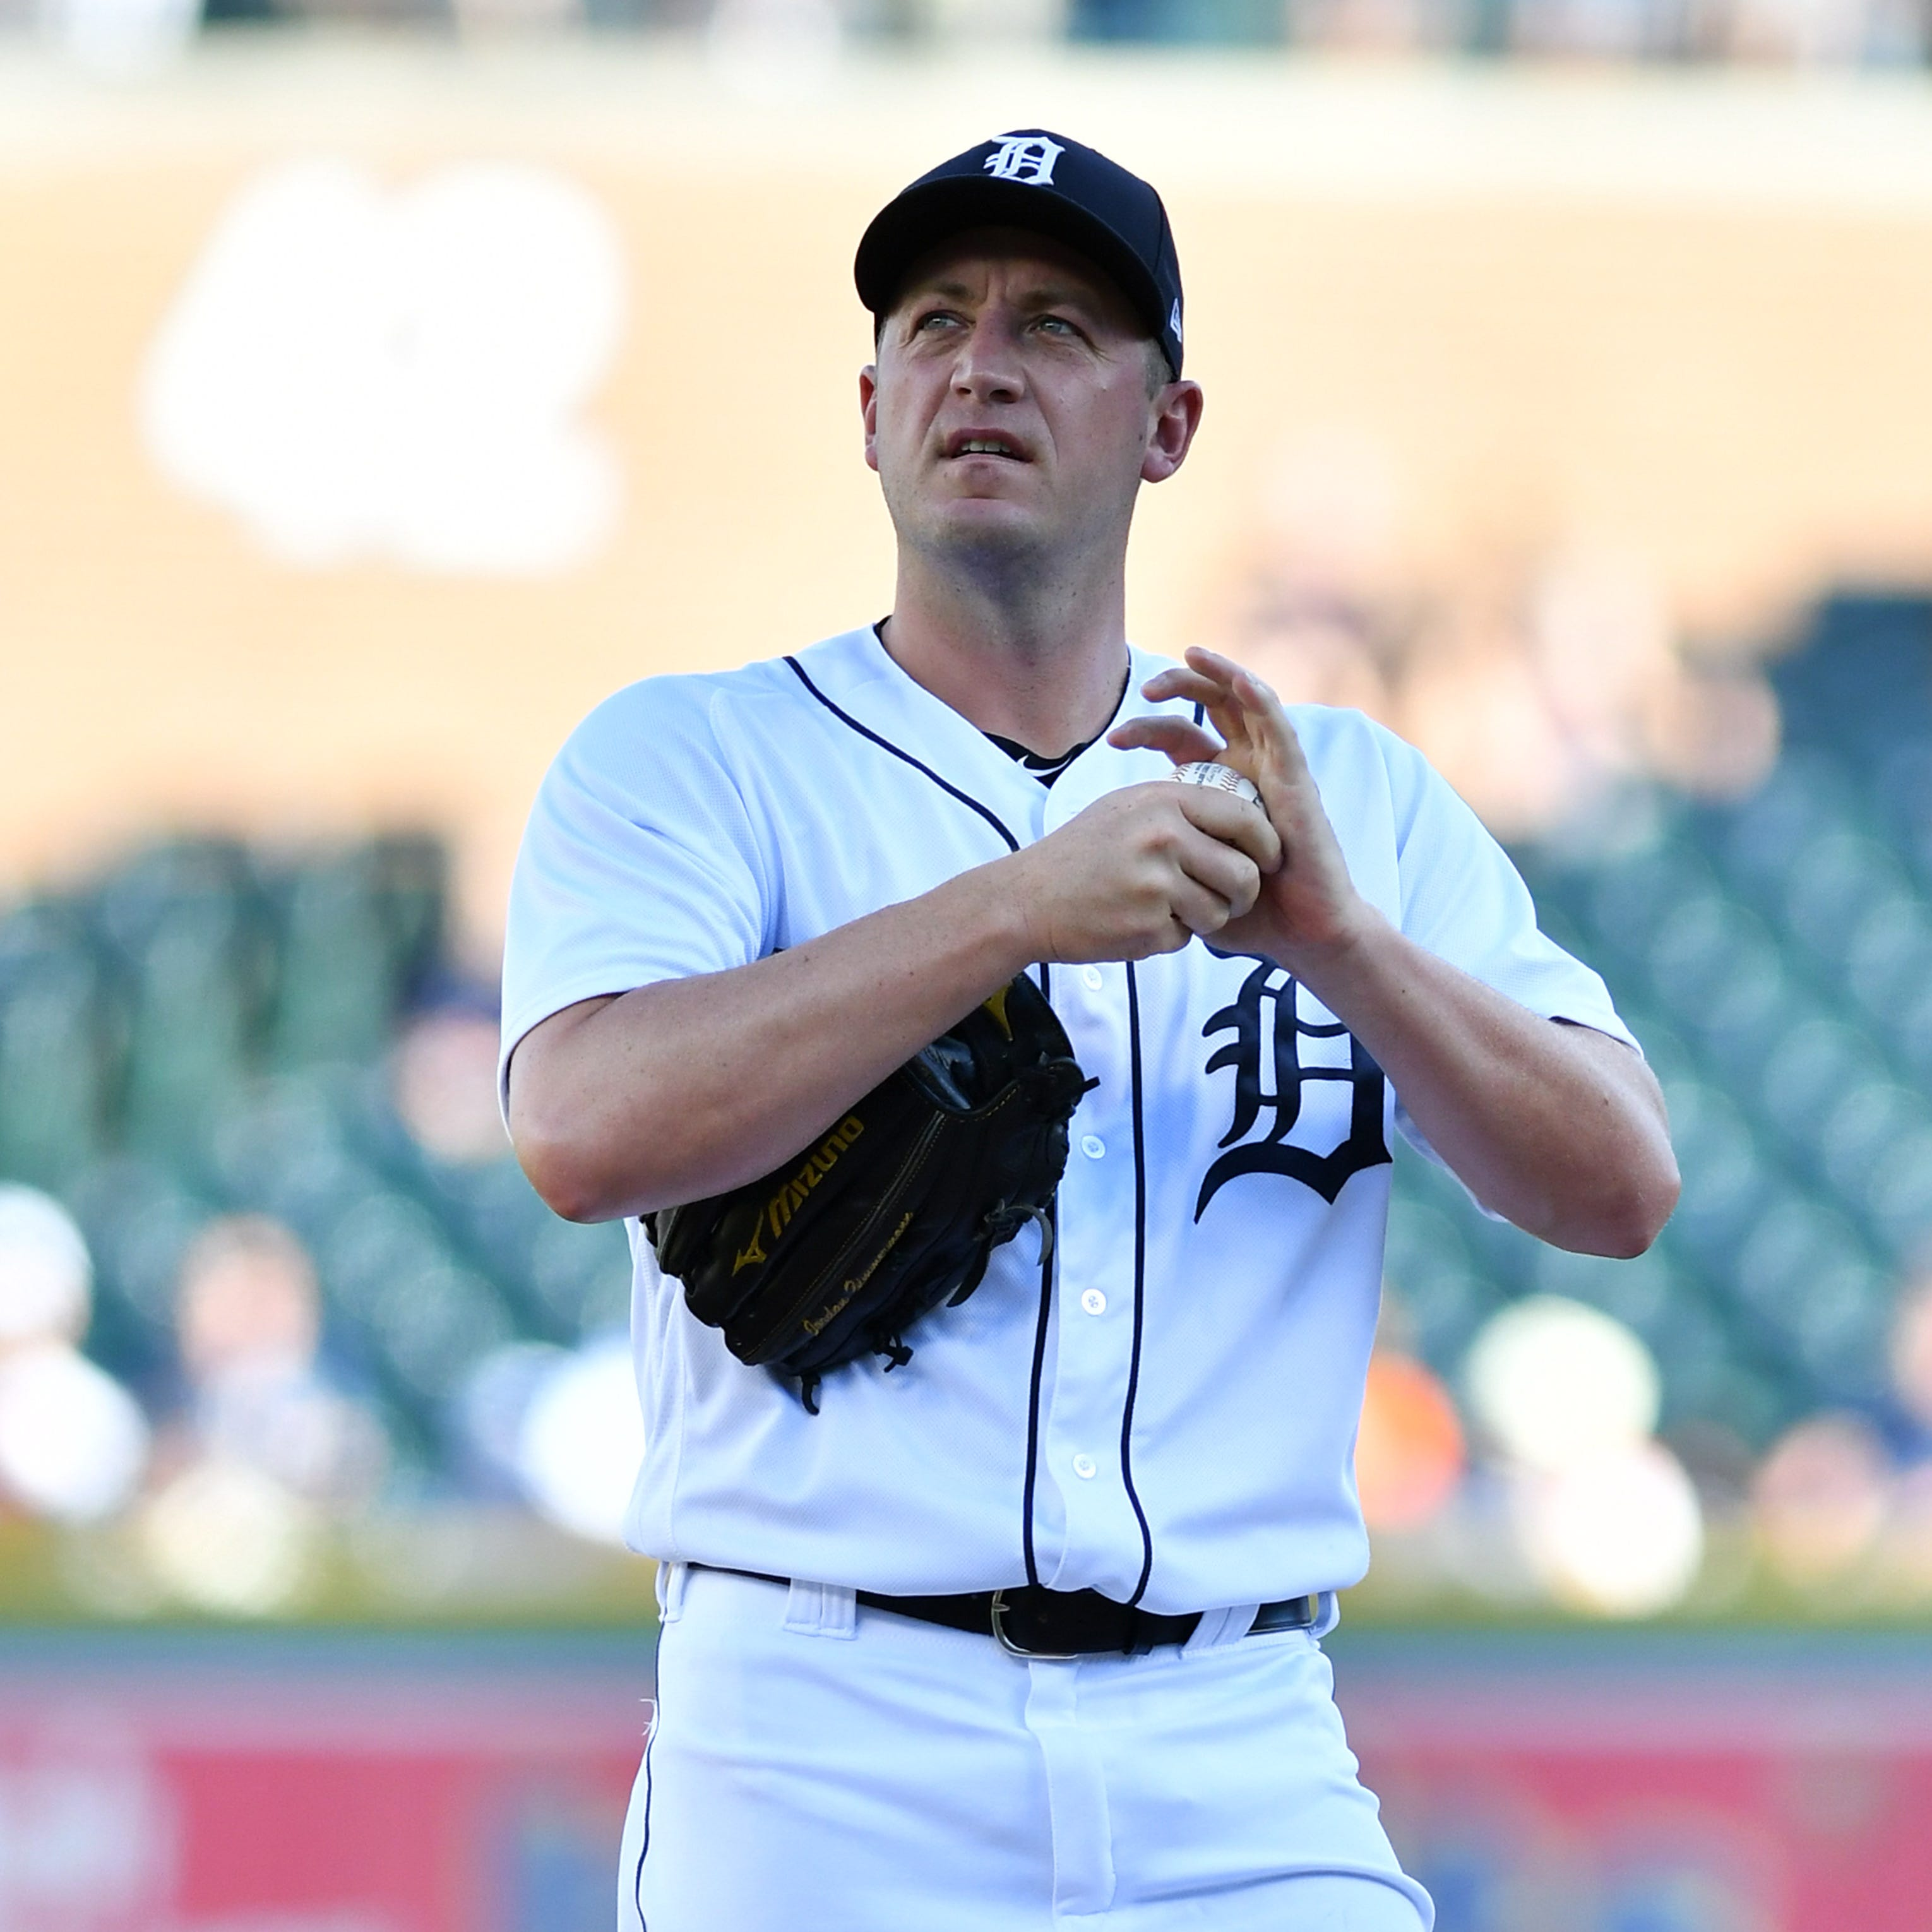 'Total command': Zimmermann starting to have look of Tigers' Opening Day starter